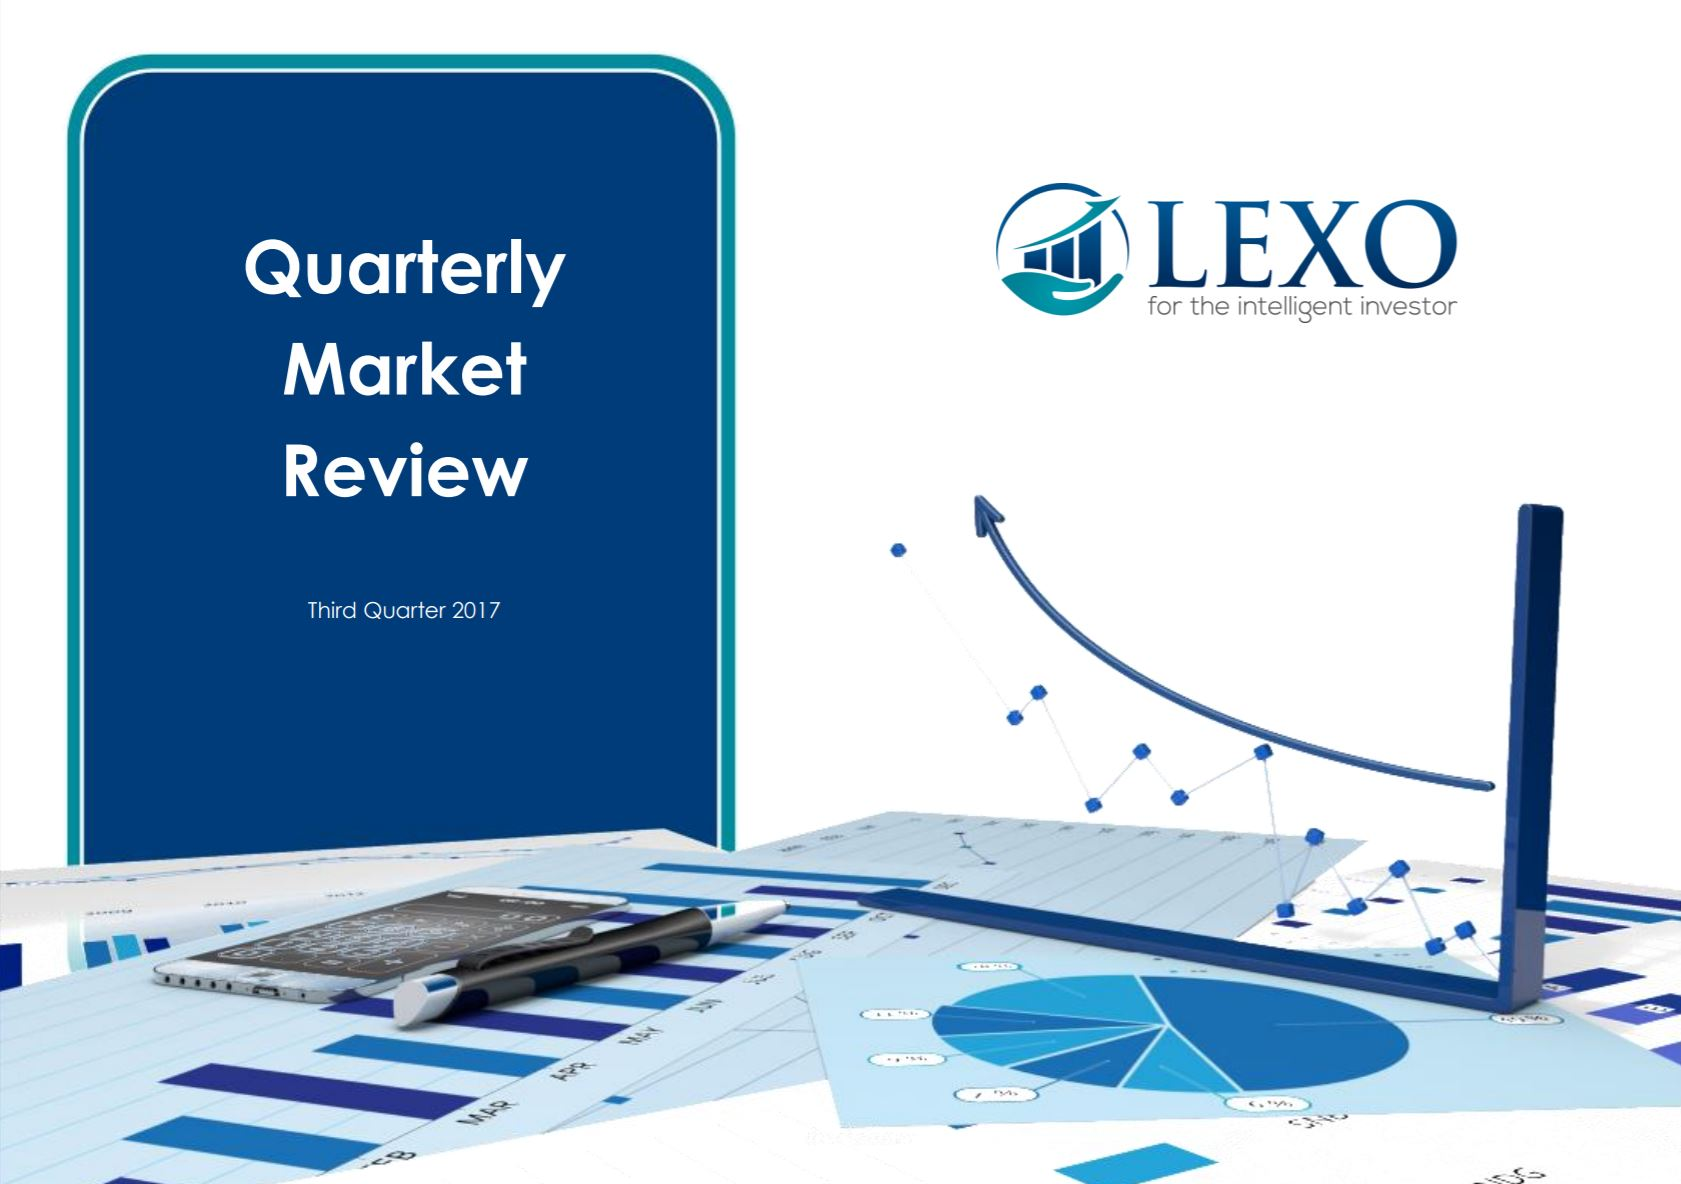 Lexo quarterly market review Q3 2017